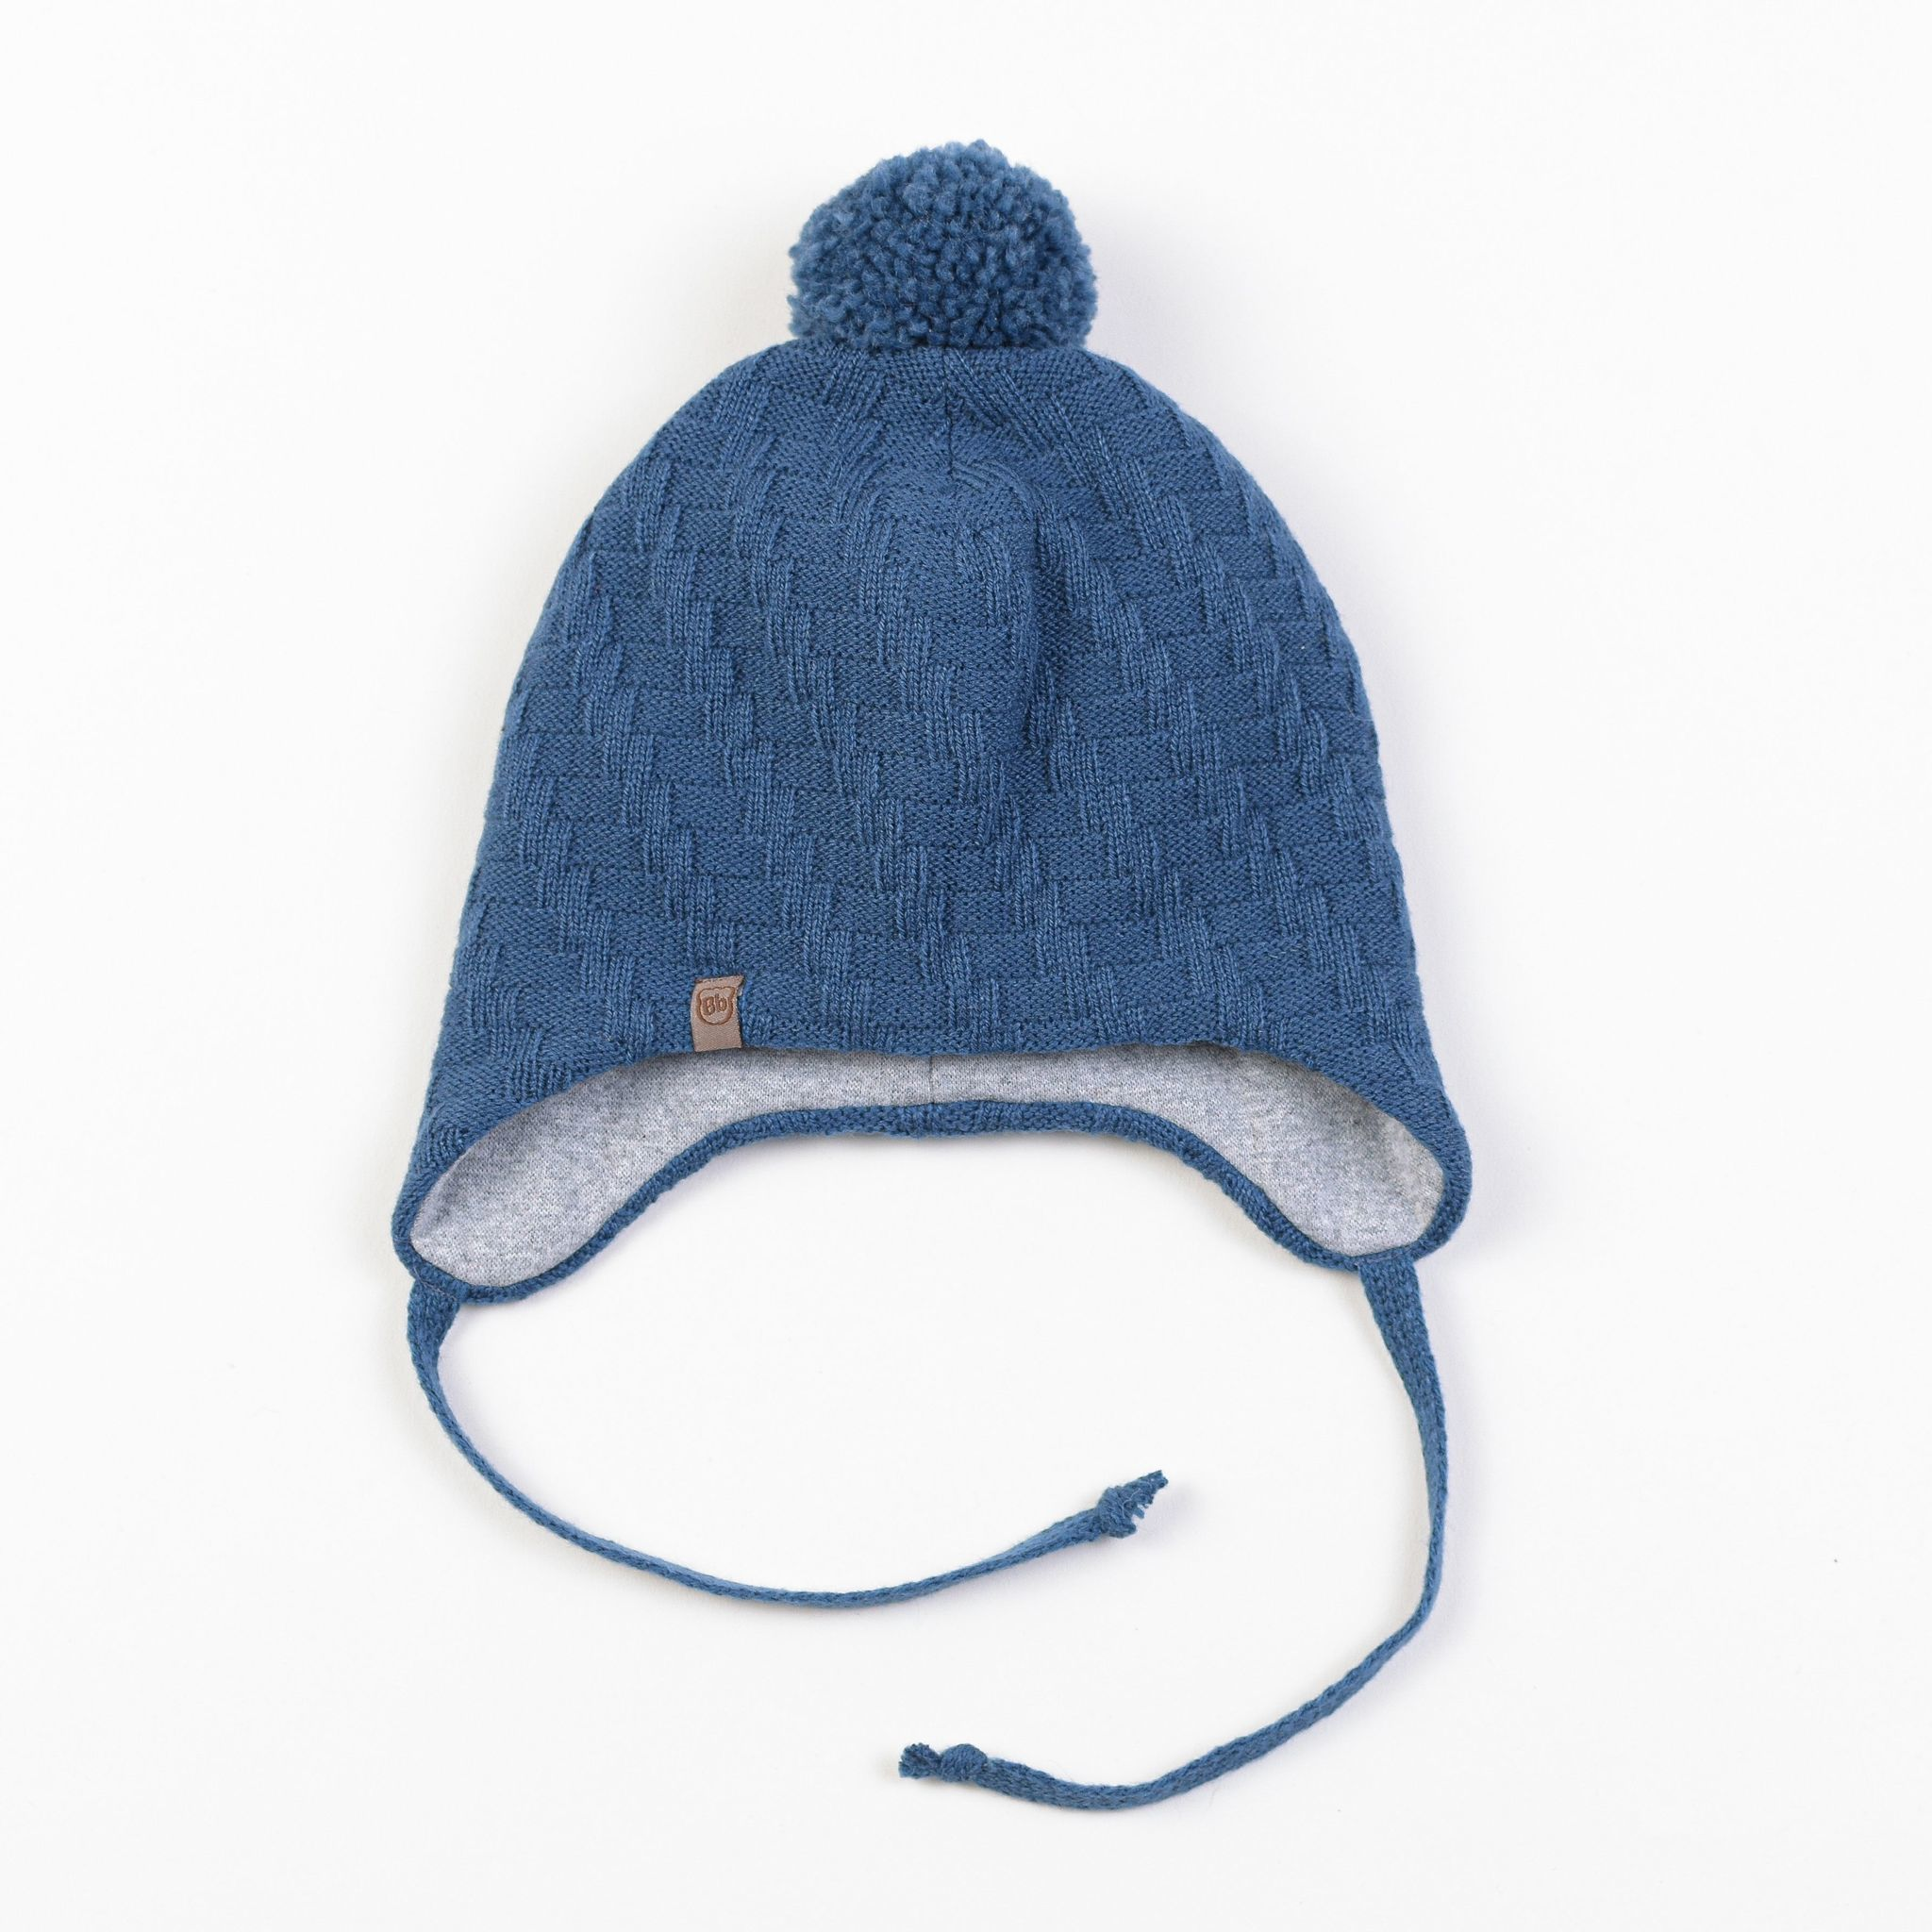 Winter hat with pompon and drawstrings 0+, Denim